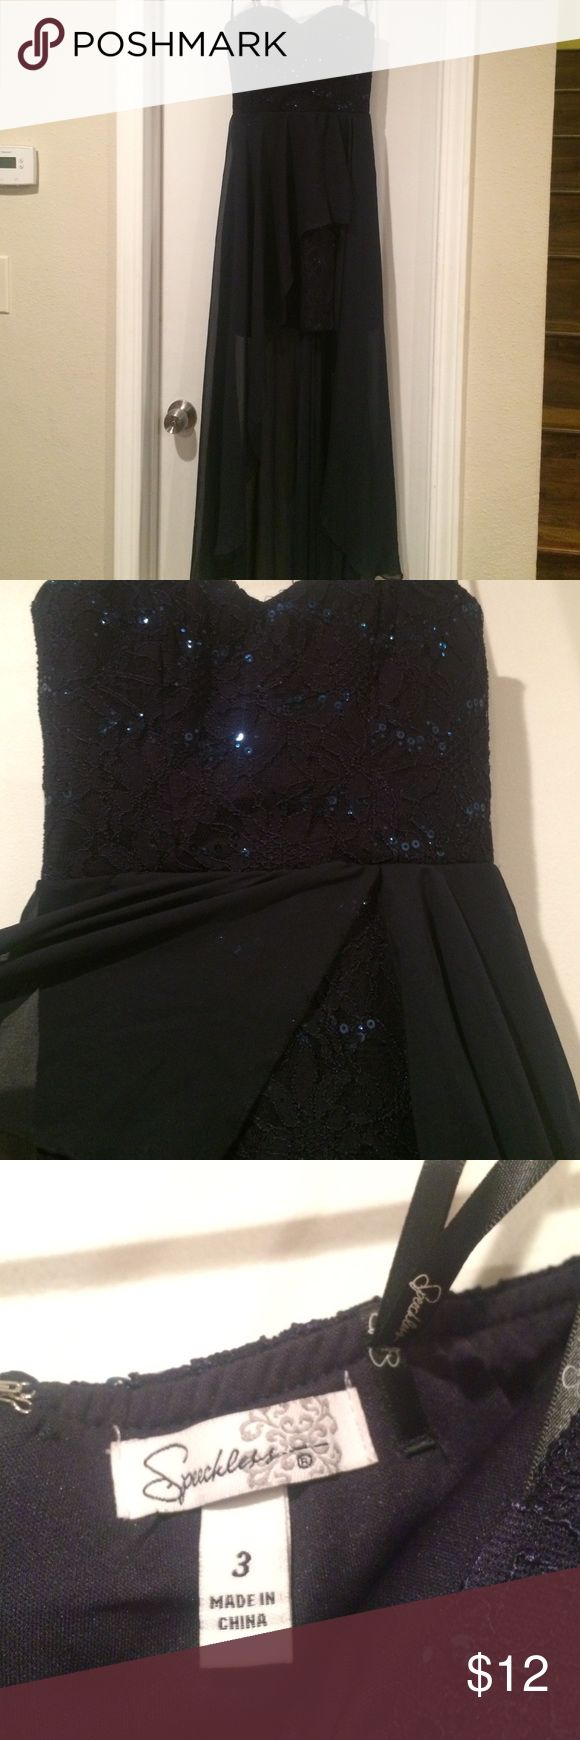 Navy blue dress High-low navy blue going out dress Dresses High Low